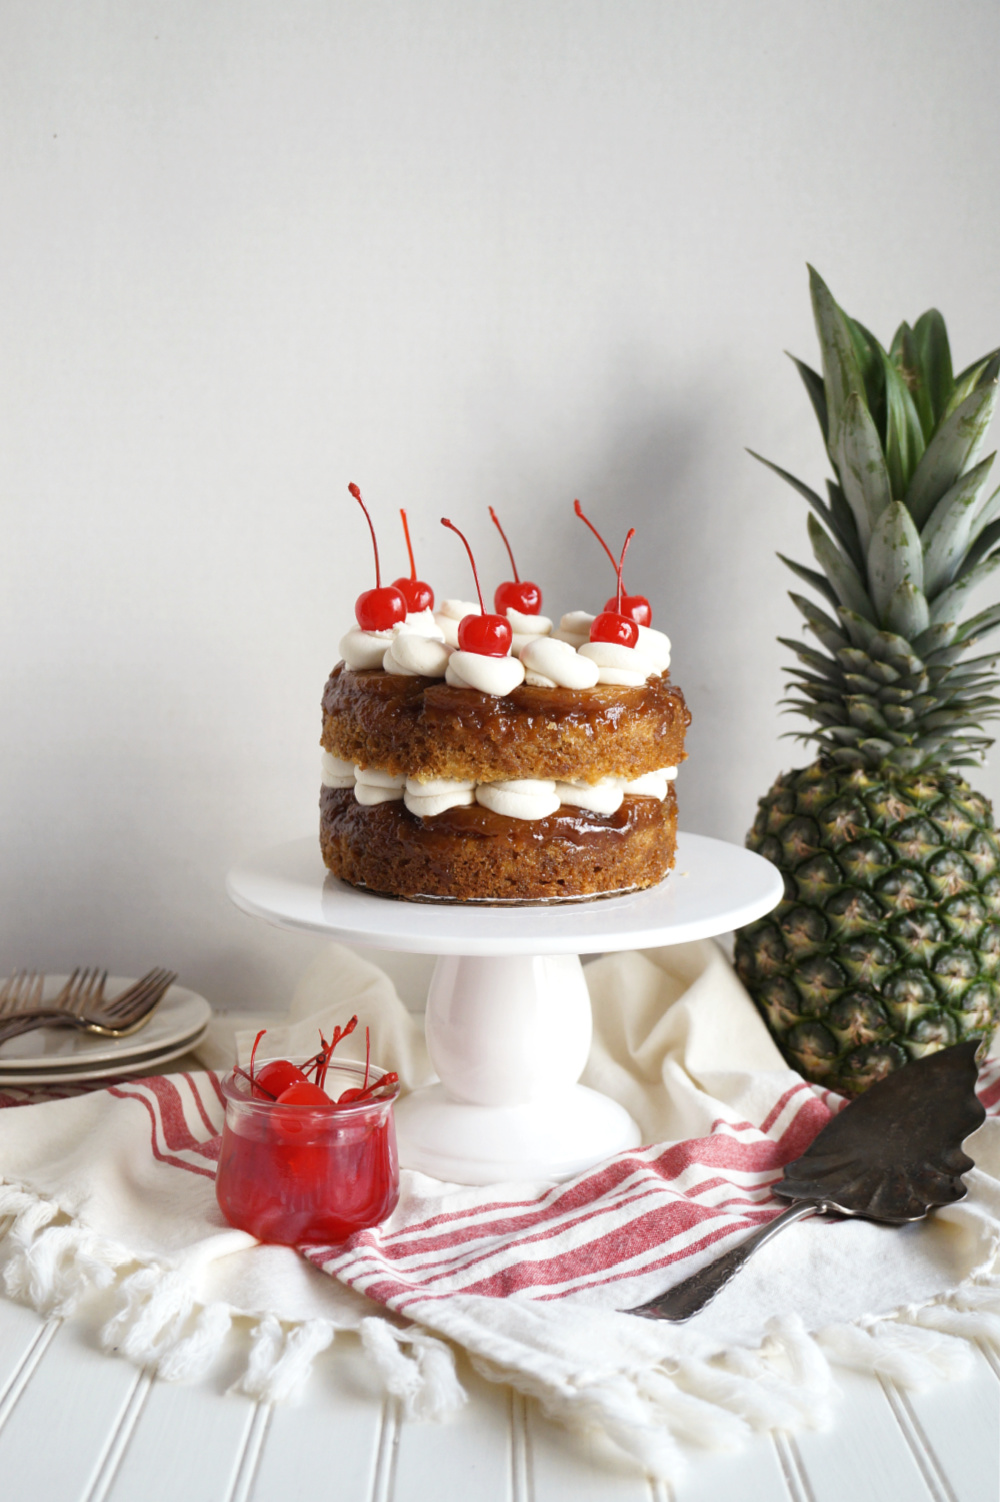 pineapple upside down cake on cake stand